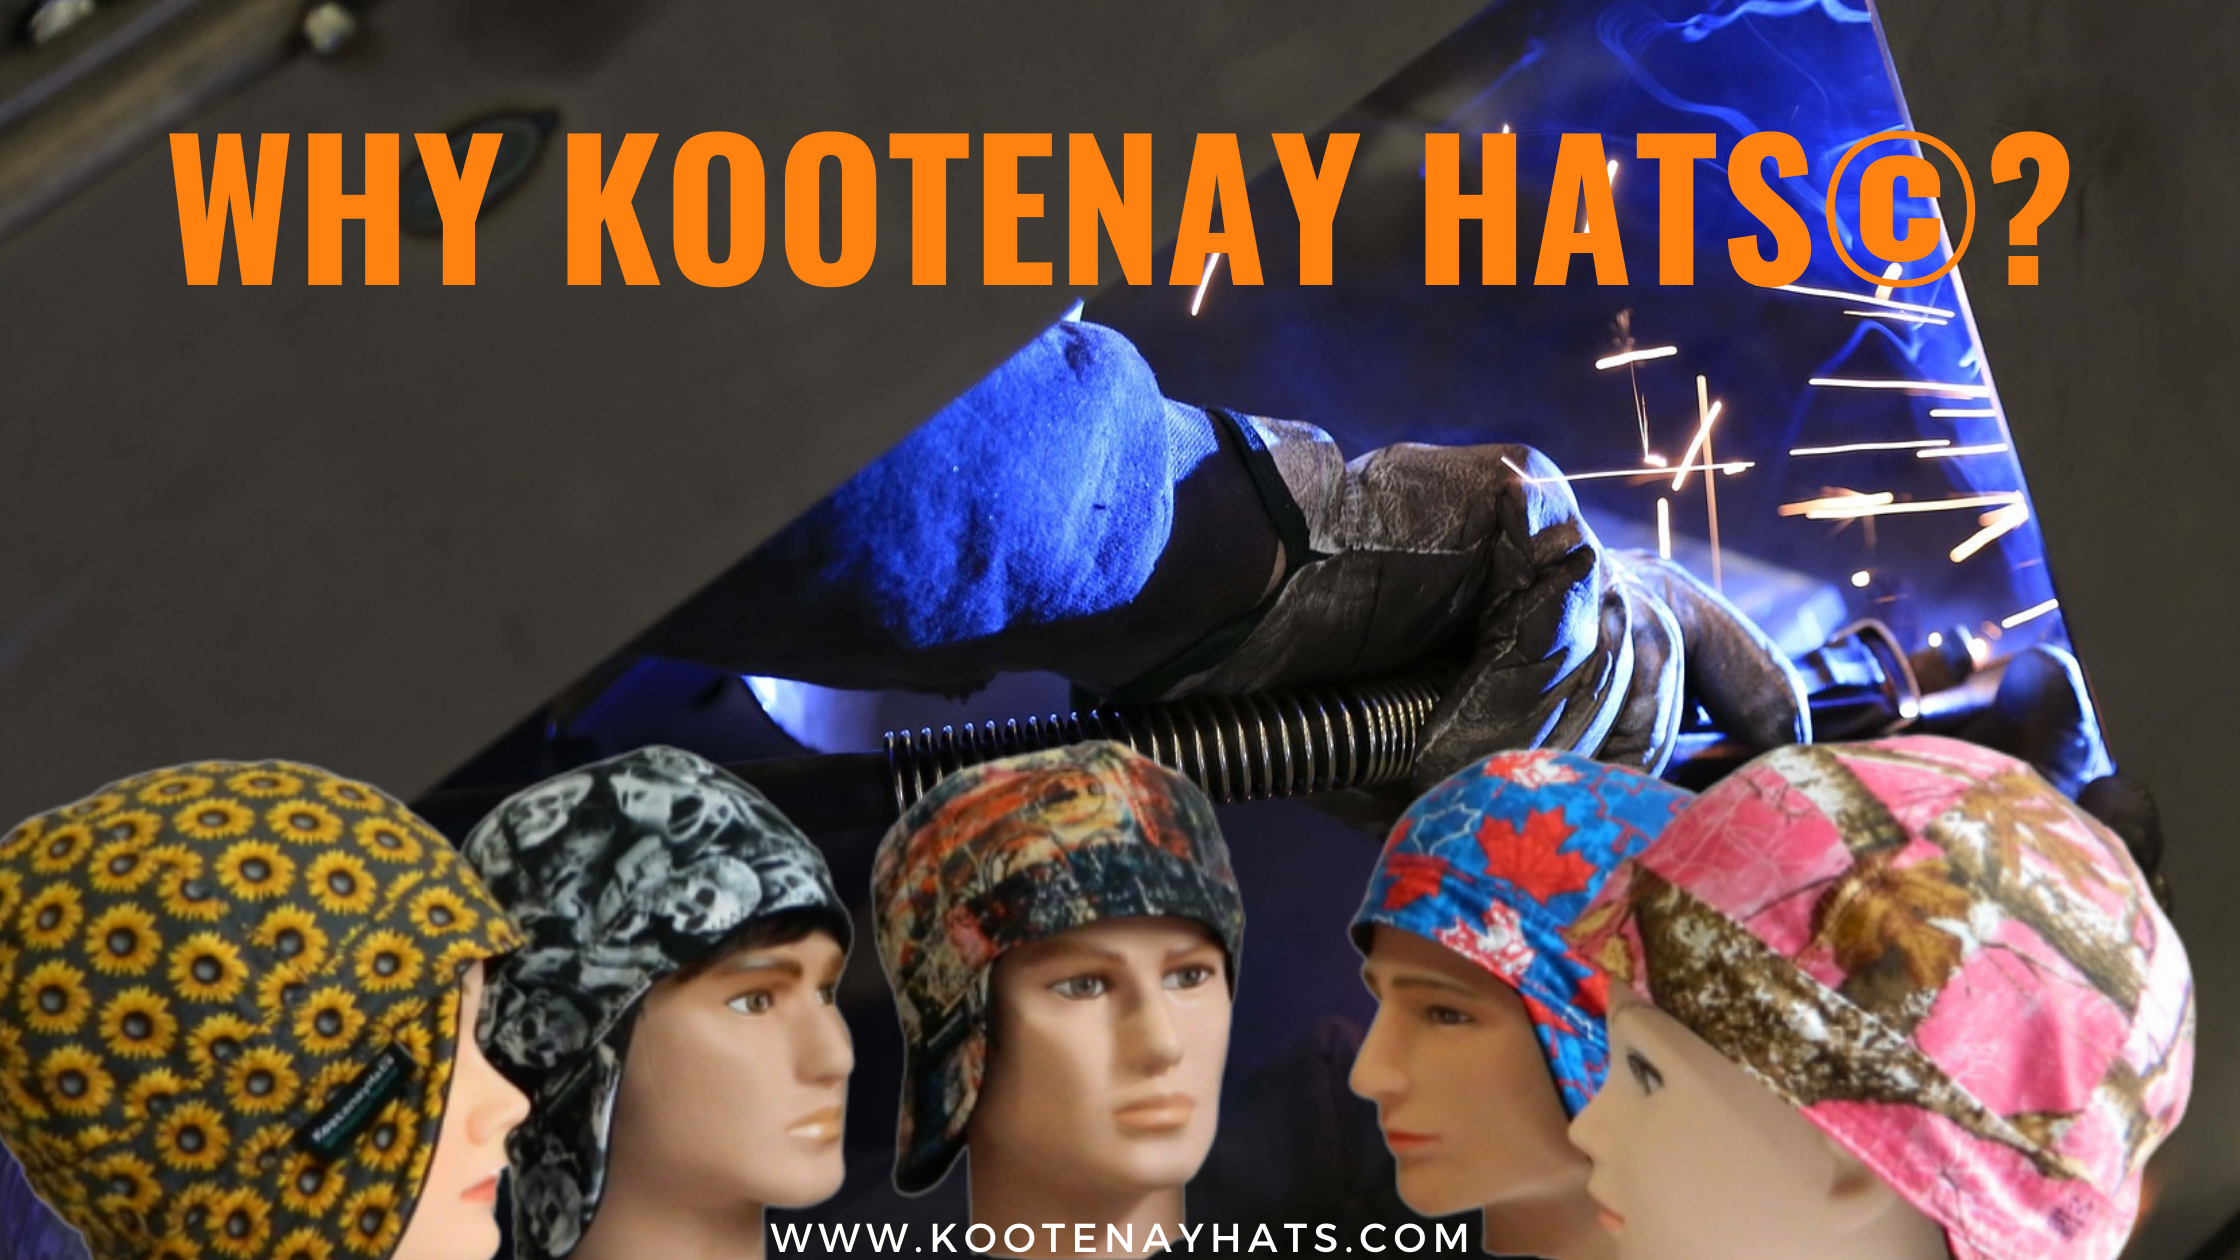 Why Kootenay Hats©? These Hats Protect Your Ear Drum From Hot Slag, Molten Metal, Flying Sparks, Heat Burn, UV Radiation When Welding & they Improve Your Comfort Under The Hard Hat Also They are Beautiful And Proud to Own.